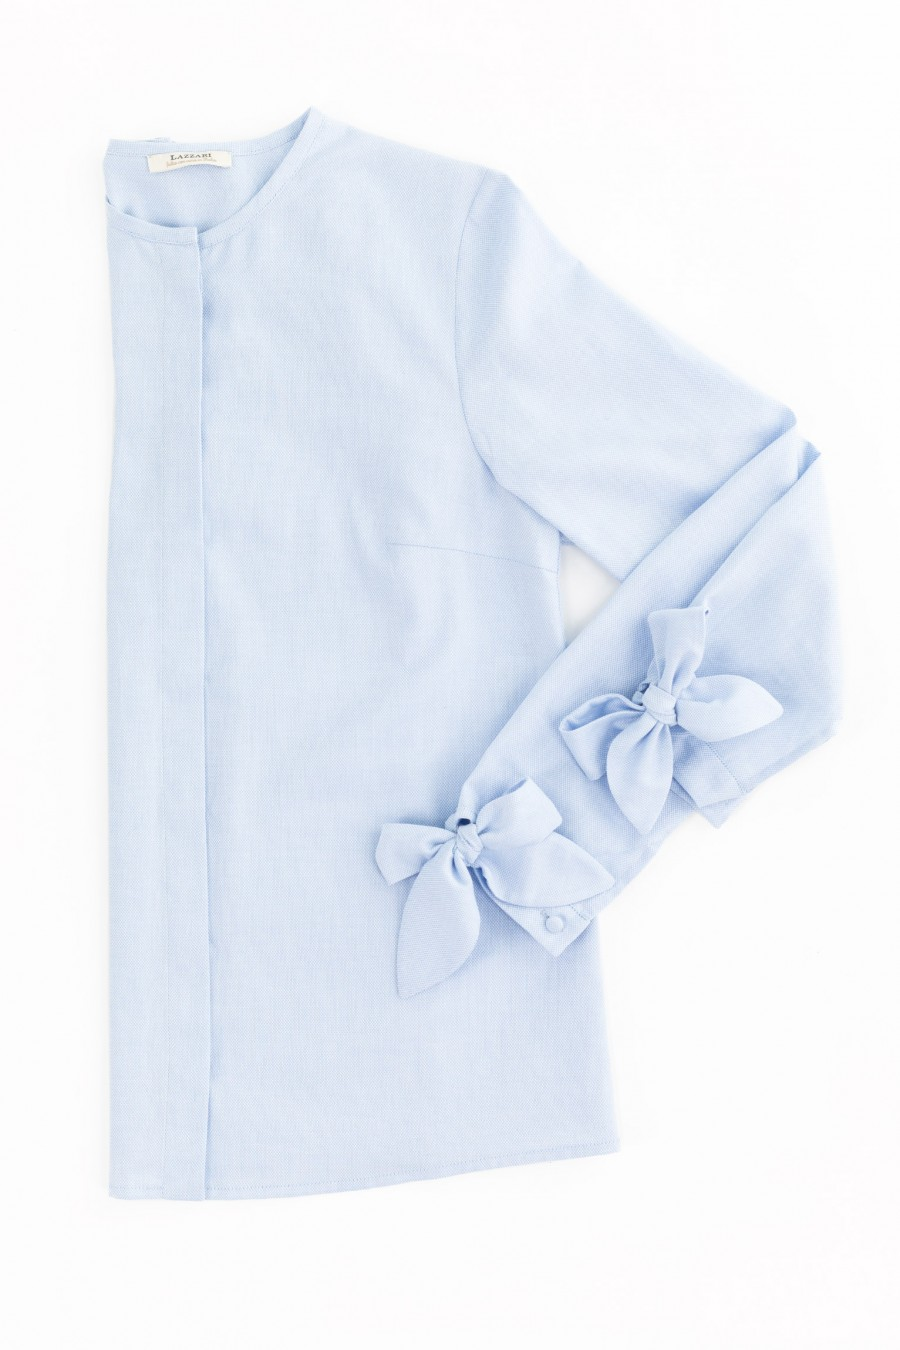 Shirt with bows on the cuffs